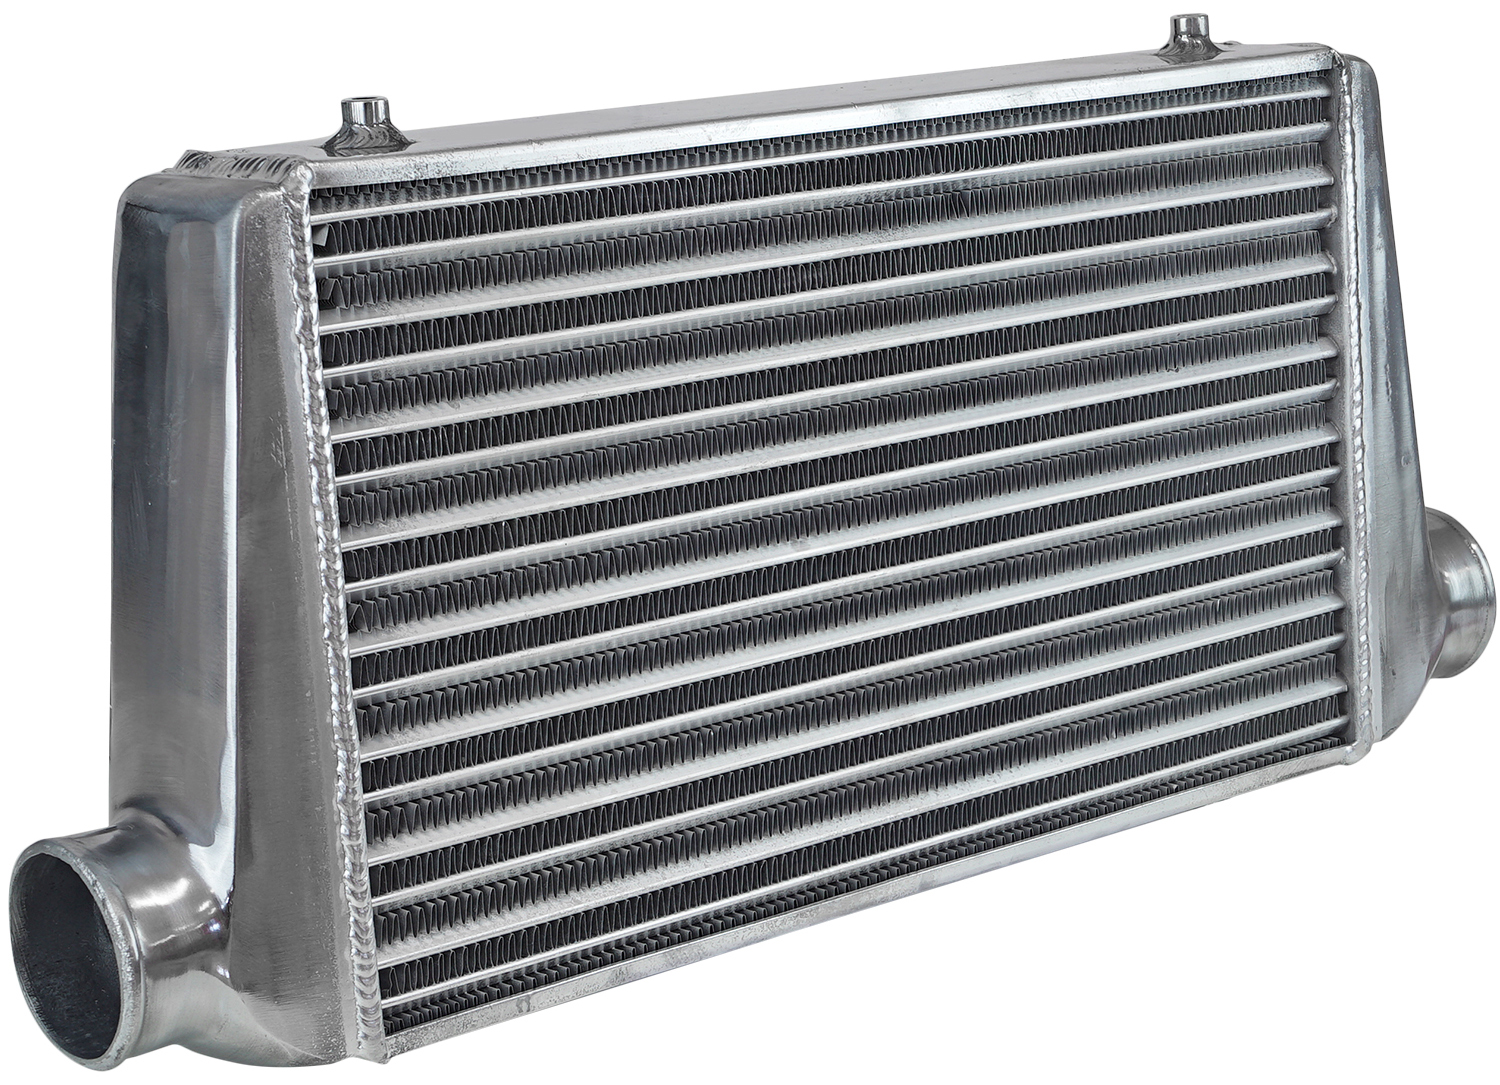 Don't paint your intercooler black - it hampers convection, the primary mechanism by which the intercooler rejects heat from the compressor